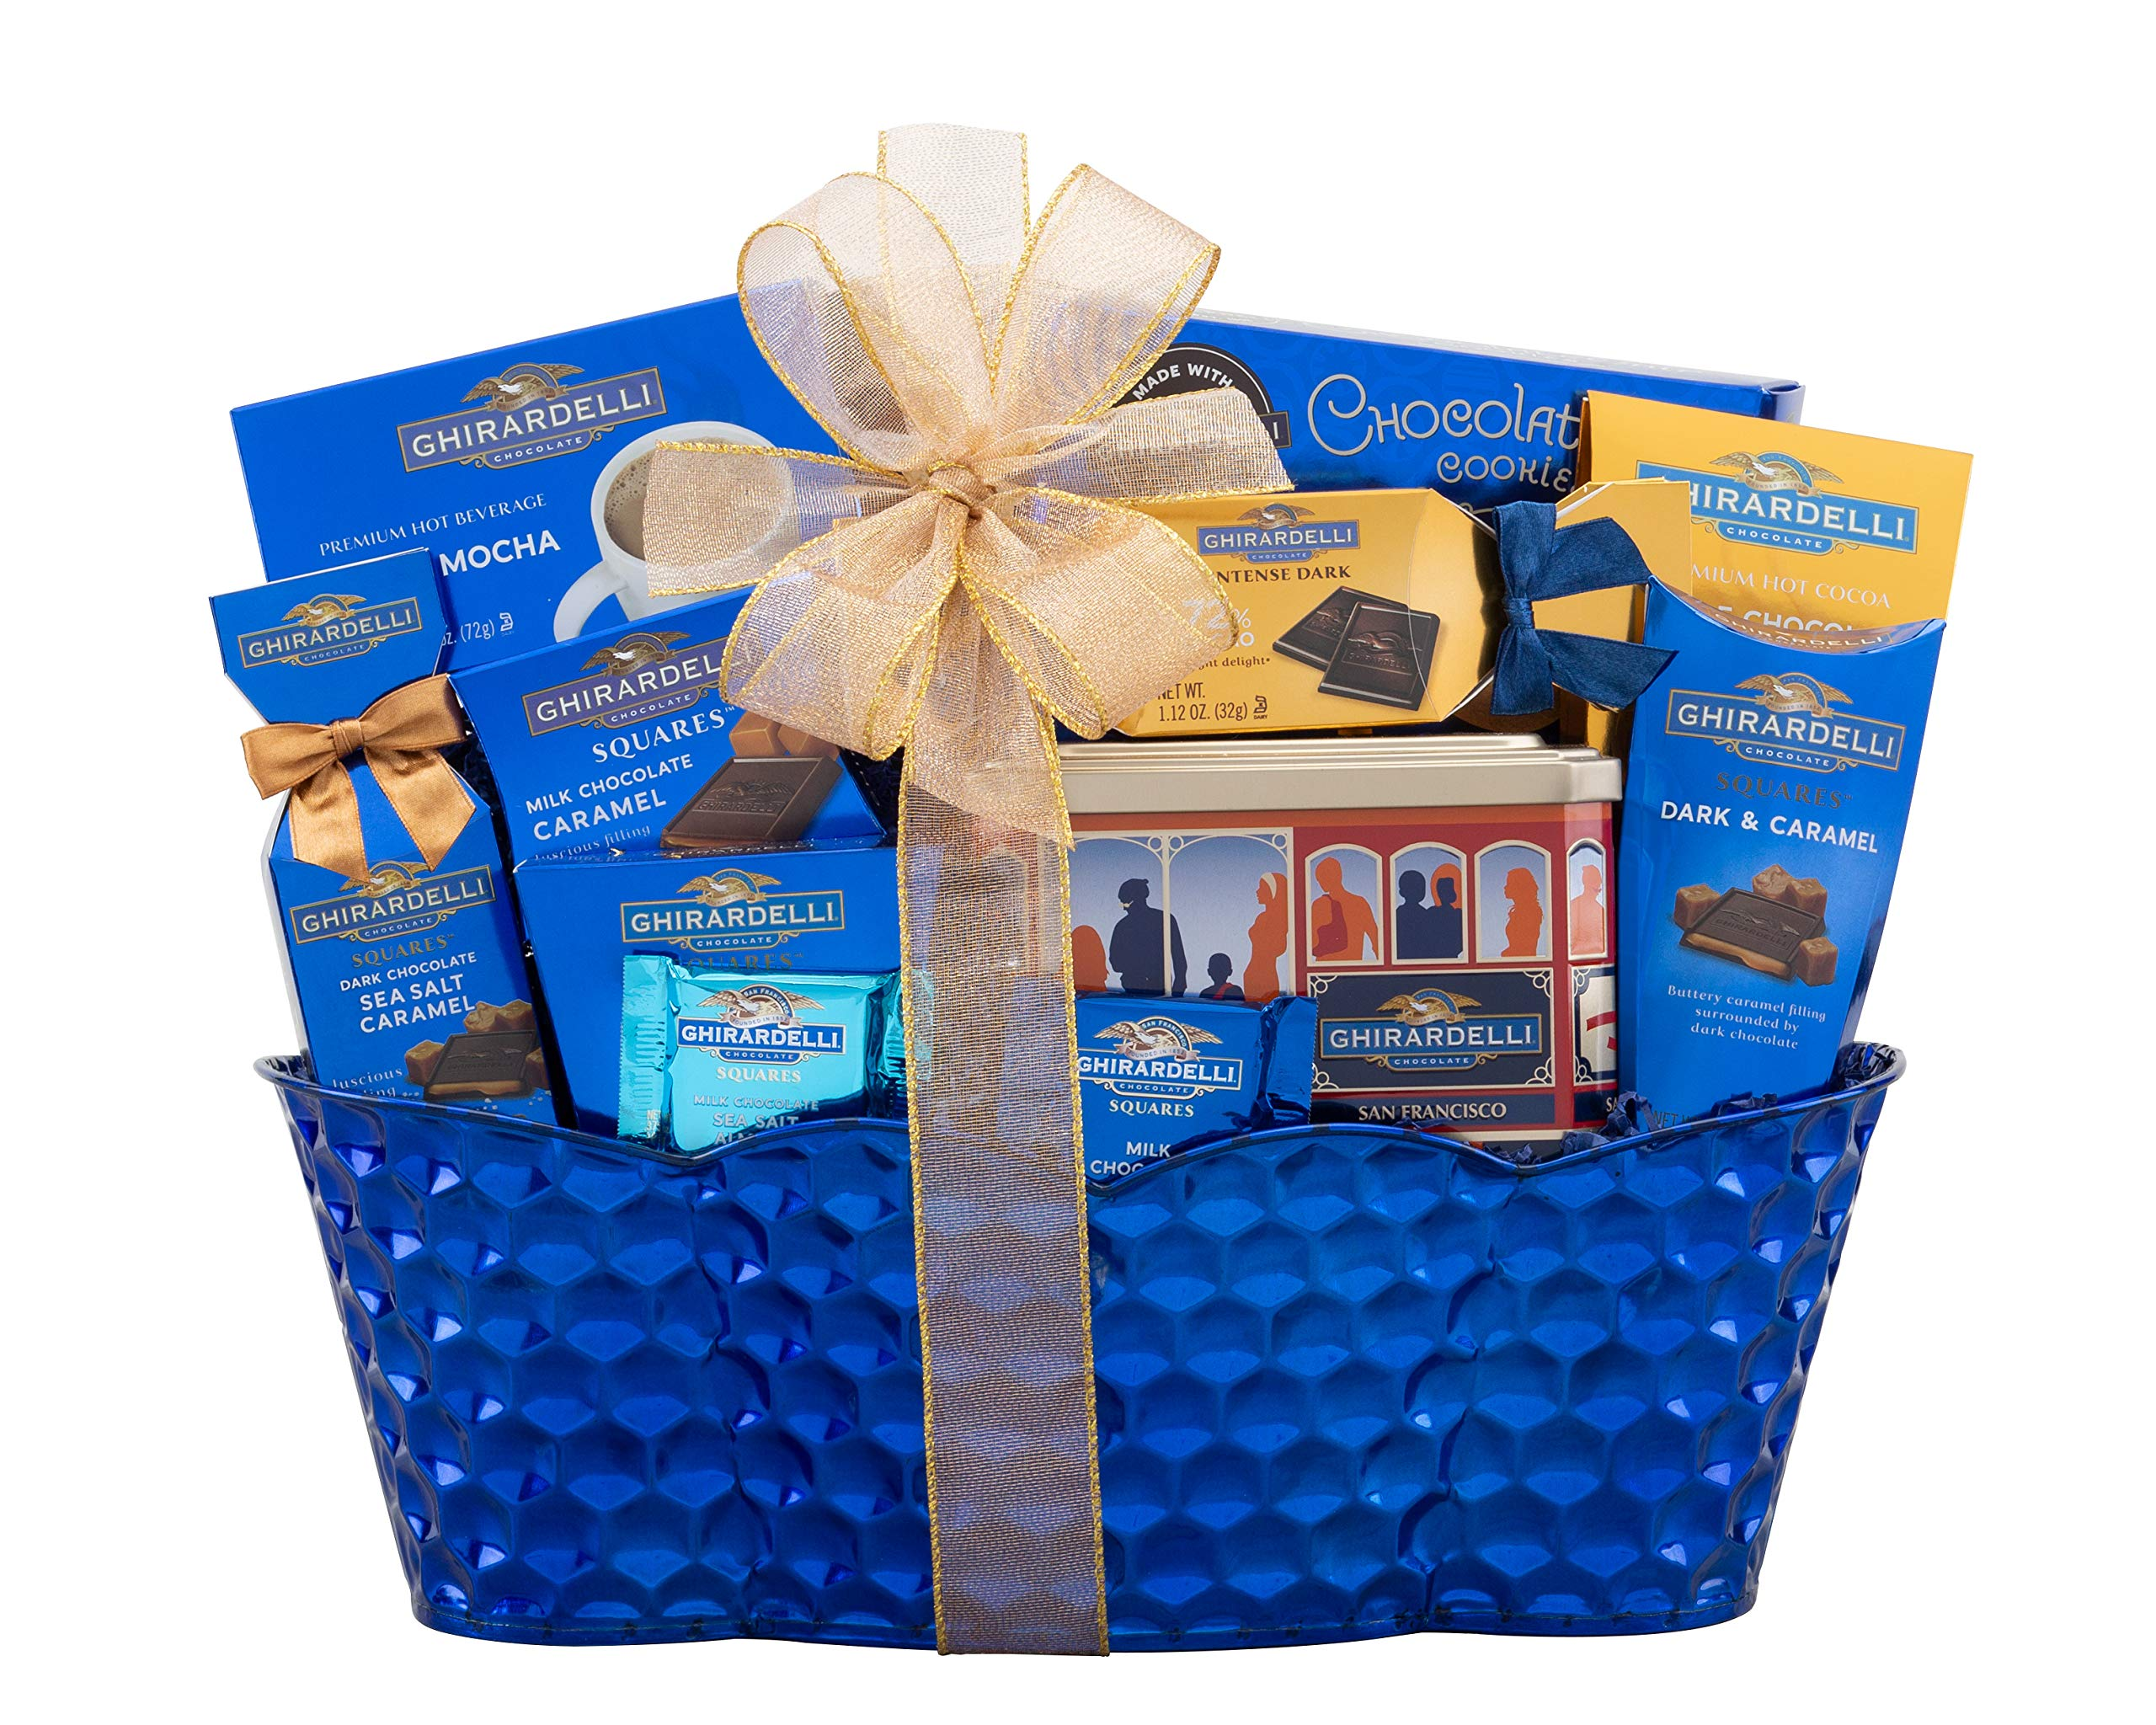 Wine Country Gift Baskets Ghirardelli Gift Basket Christmas Chocolate Gift Basket. Edible Arrangements Delivered. Perfect As A Corporate Gift Thank You Gift, Appreciation Gift Basket, Family Gift by Wine Country Gift Baskets